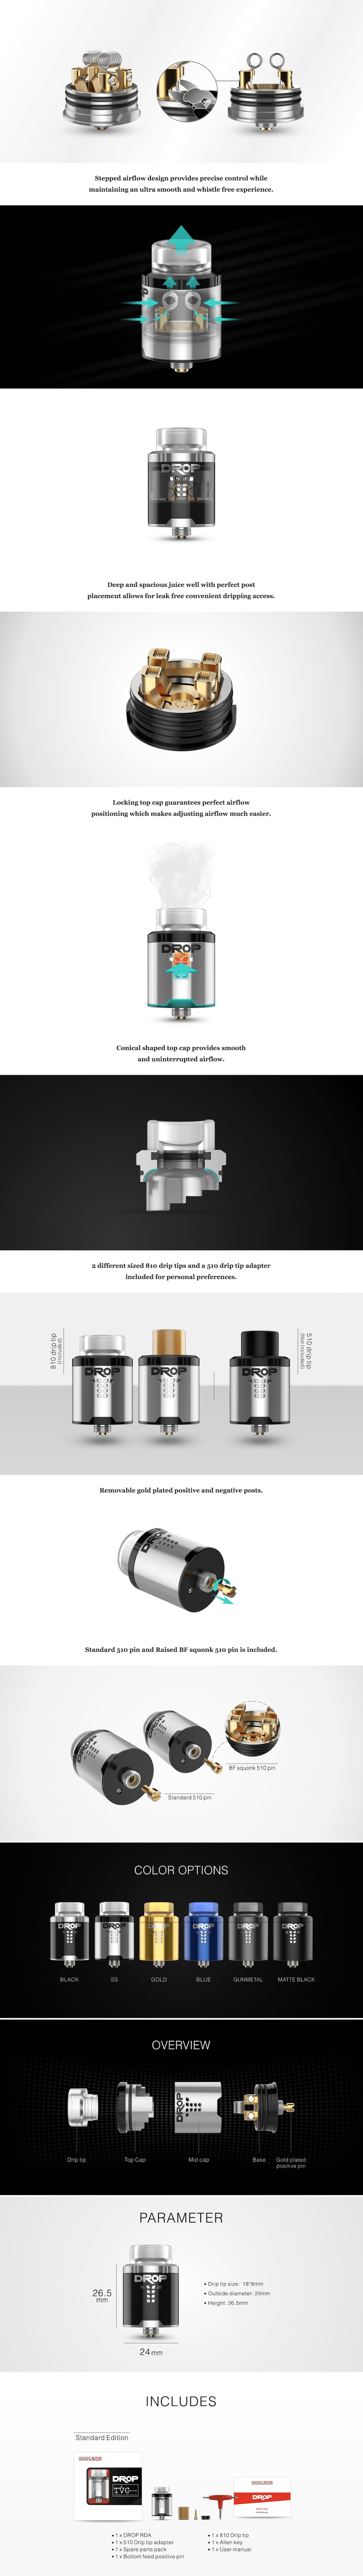 DROP SOLO 22mm RDA oleh Digiflavor dan The Vapor Chronicles